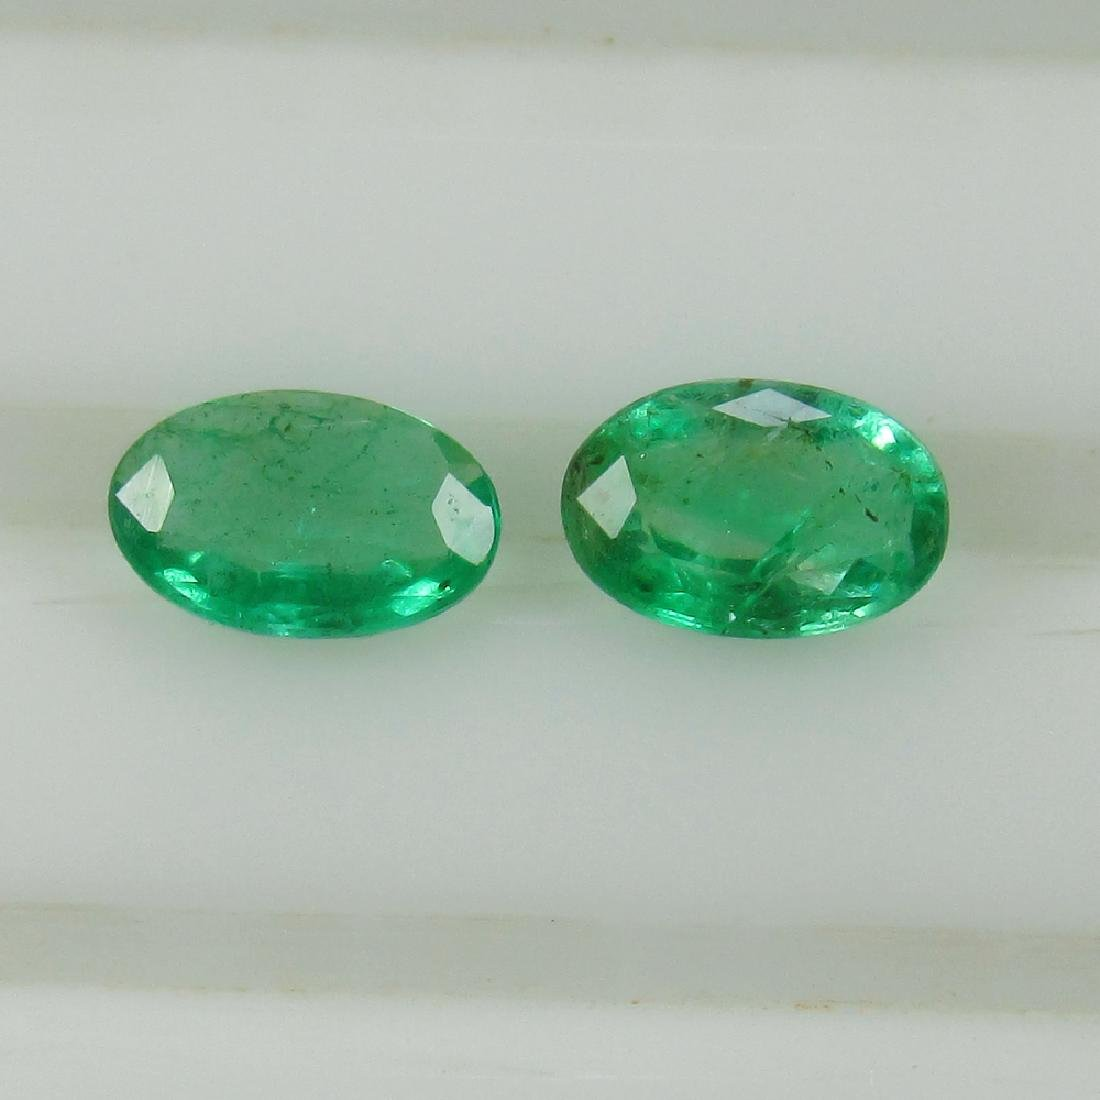 0.59 Ct Genuine Zambian Emerald Oval Pair